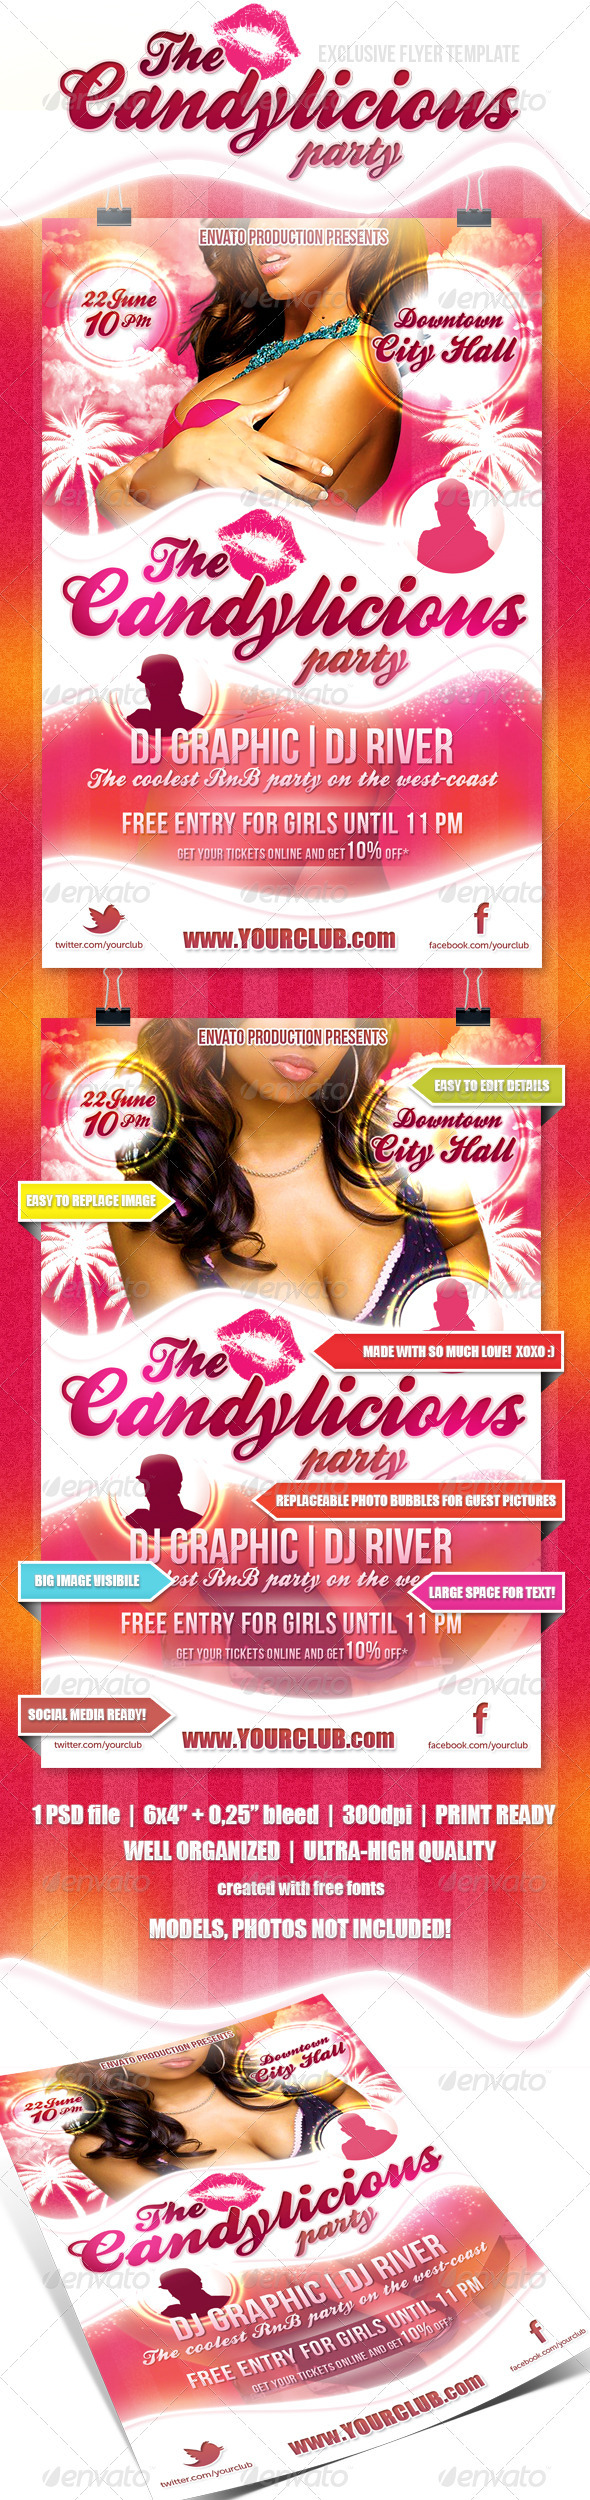 GraphicRiver Candylicious Party flyer 2334574